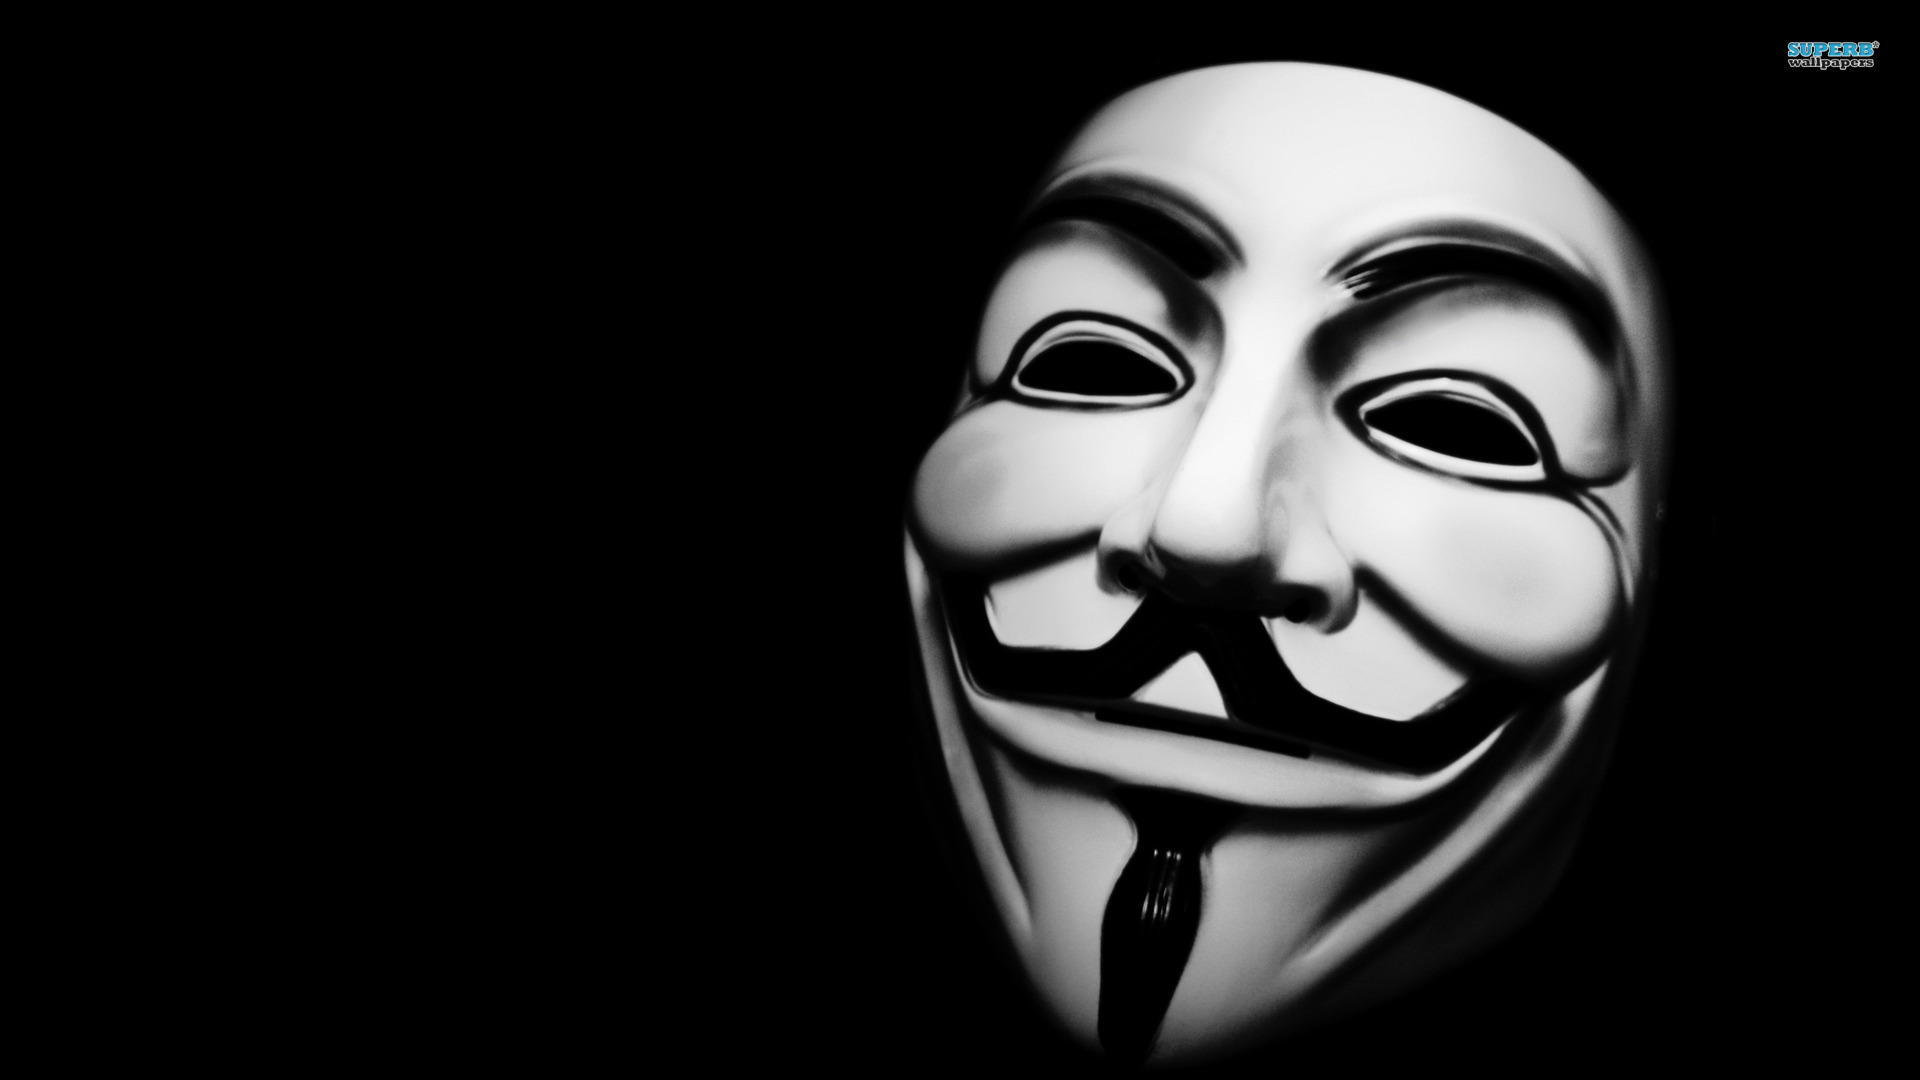 HD Anonymous Full HD Live Wallpaper - DSC8484 Screenshot